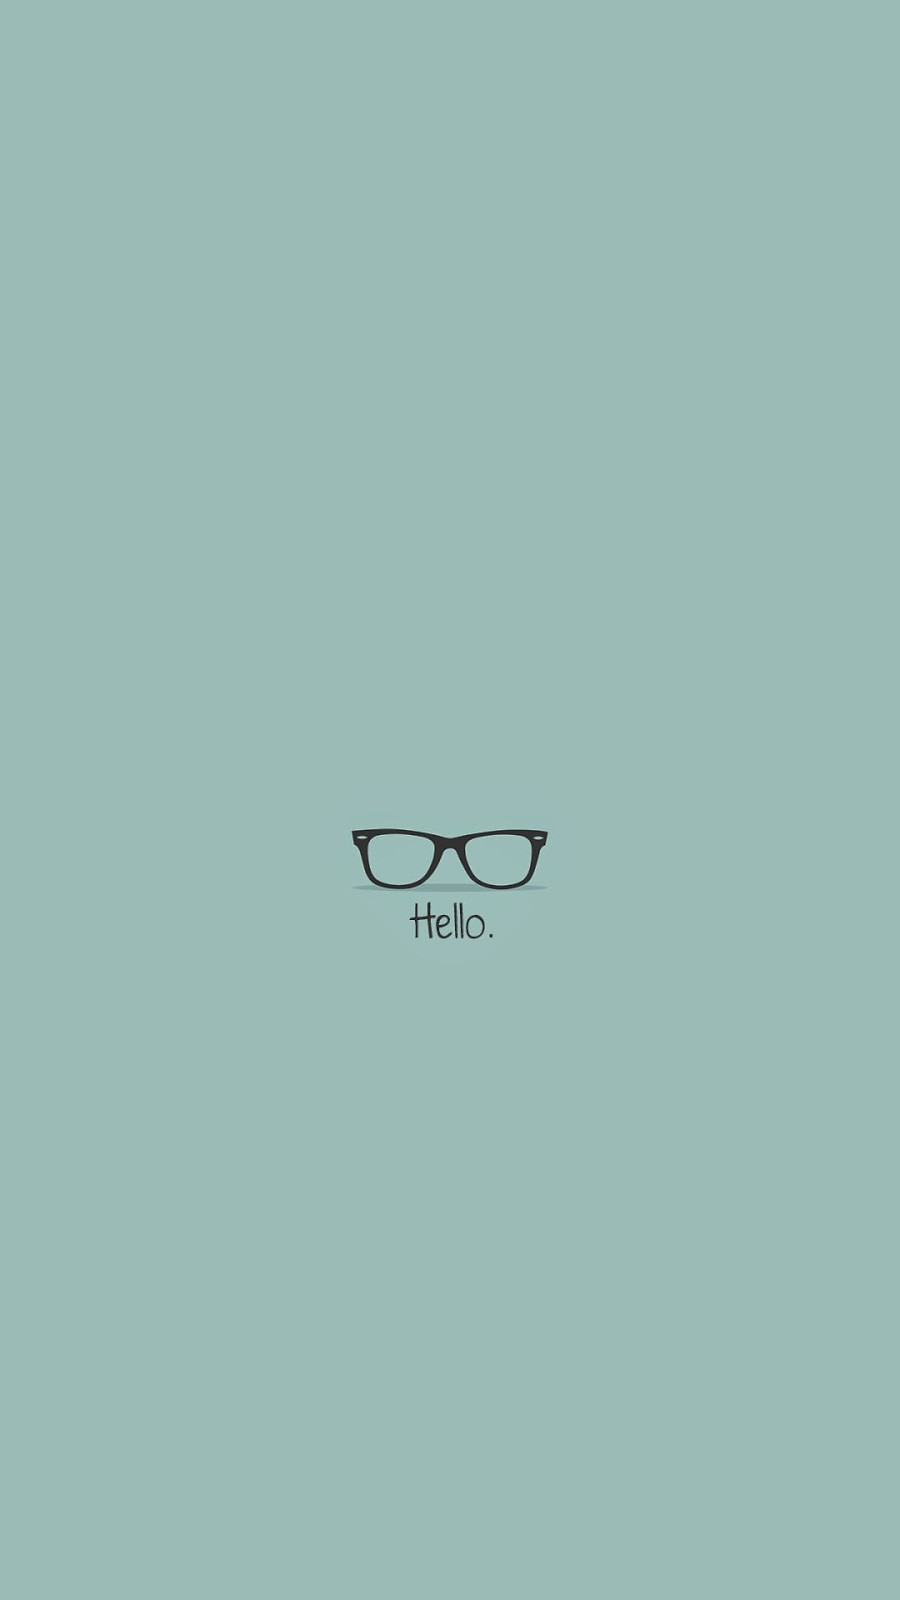 Hipster Glasses Hello iPhone 6 Wallpaper